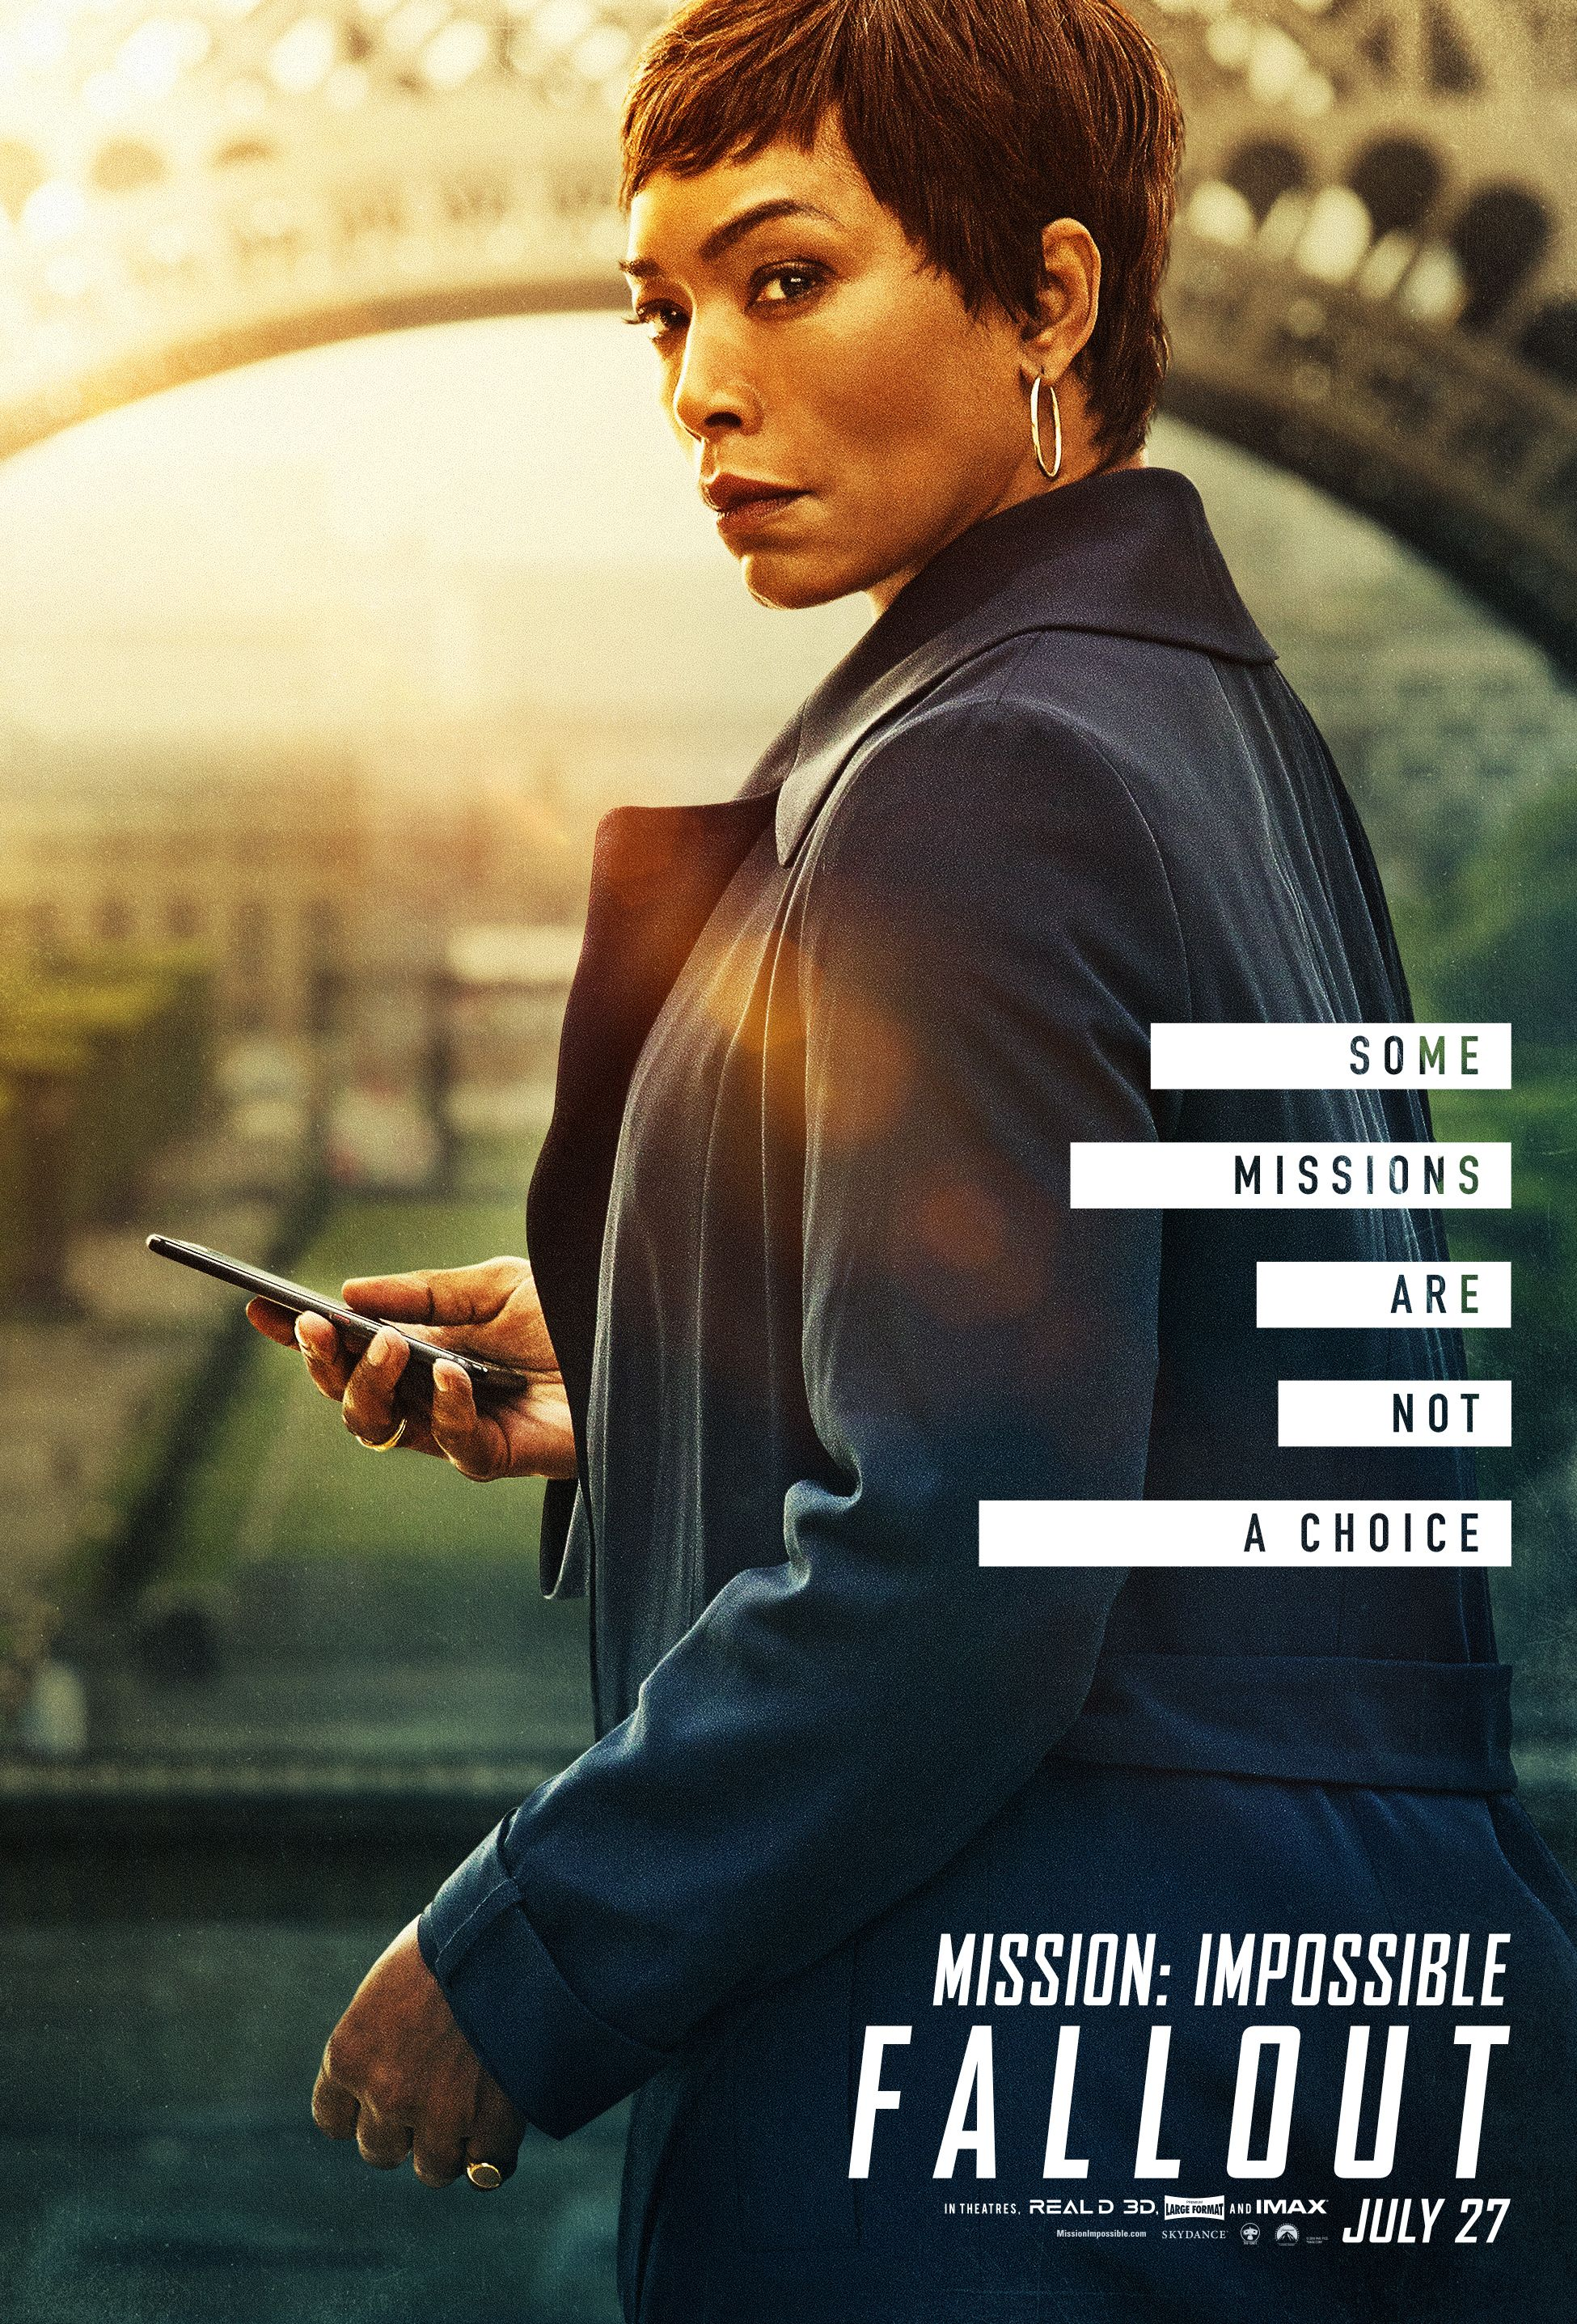 Angelabassett As Cia Director Missionimpossible Mission Impossible Fallout Mission Impossible Movie Fallout Movie